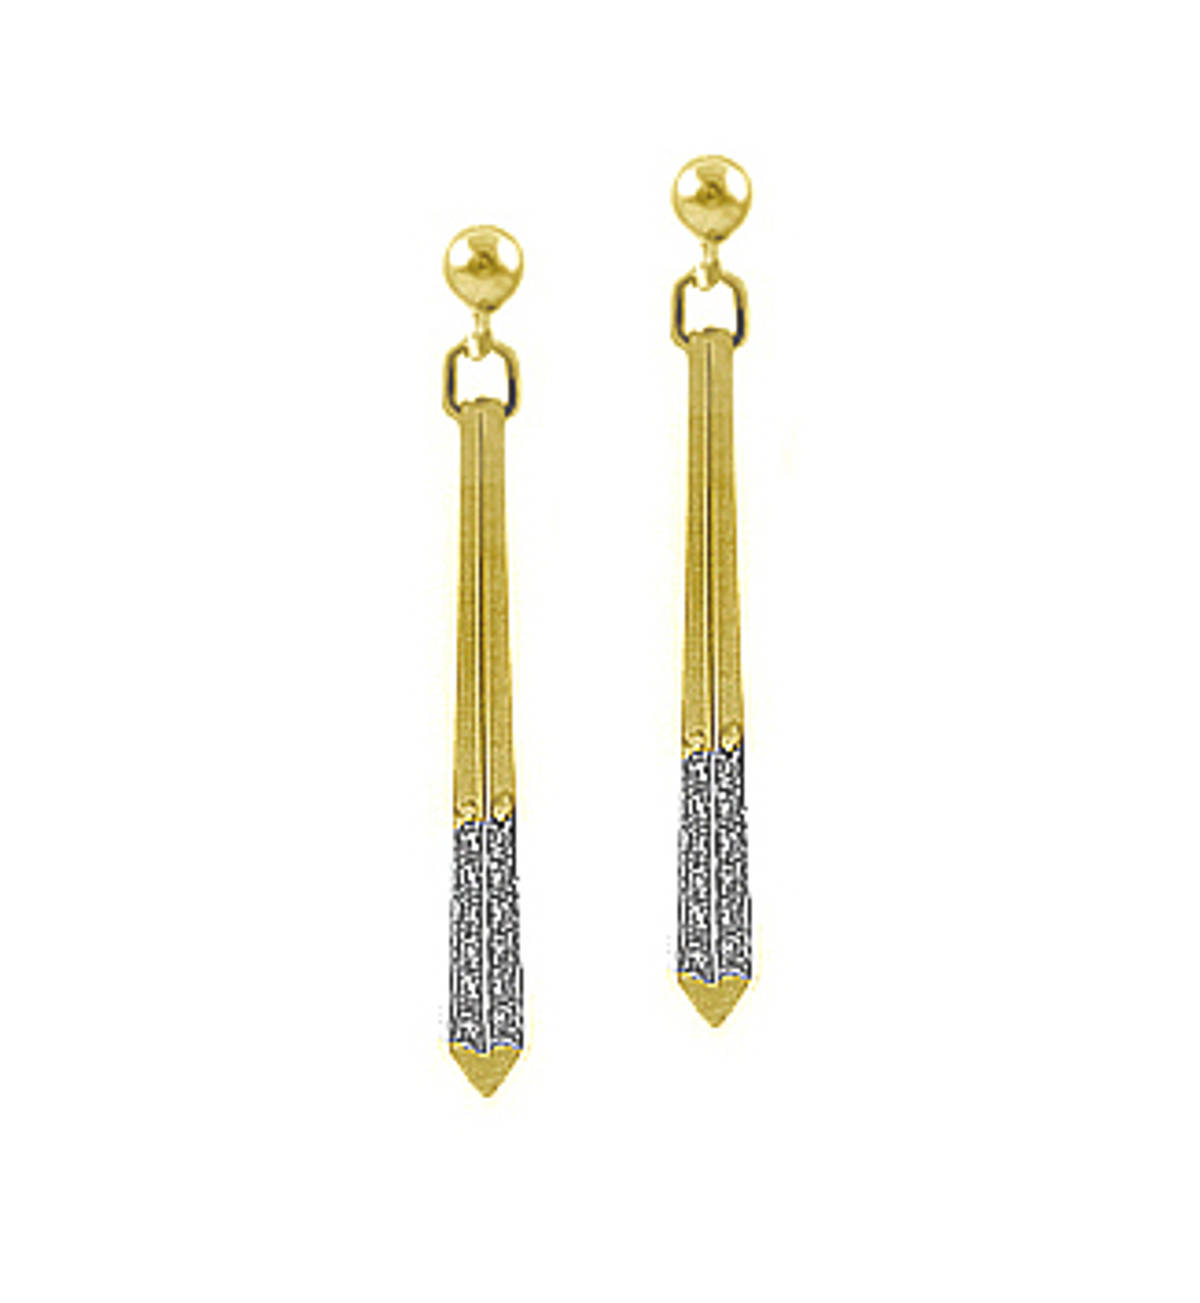 9k yellow gold brilliant cut diamond bar drop earringsDETAILSCarat: diamond total weight 0.24cts